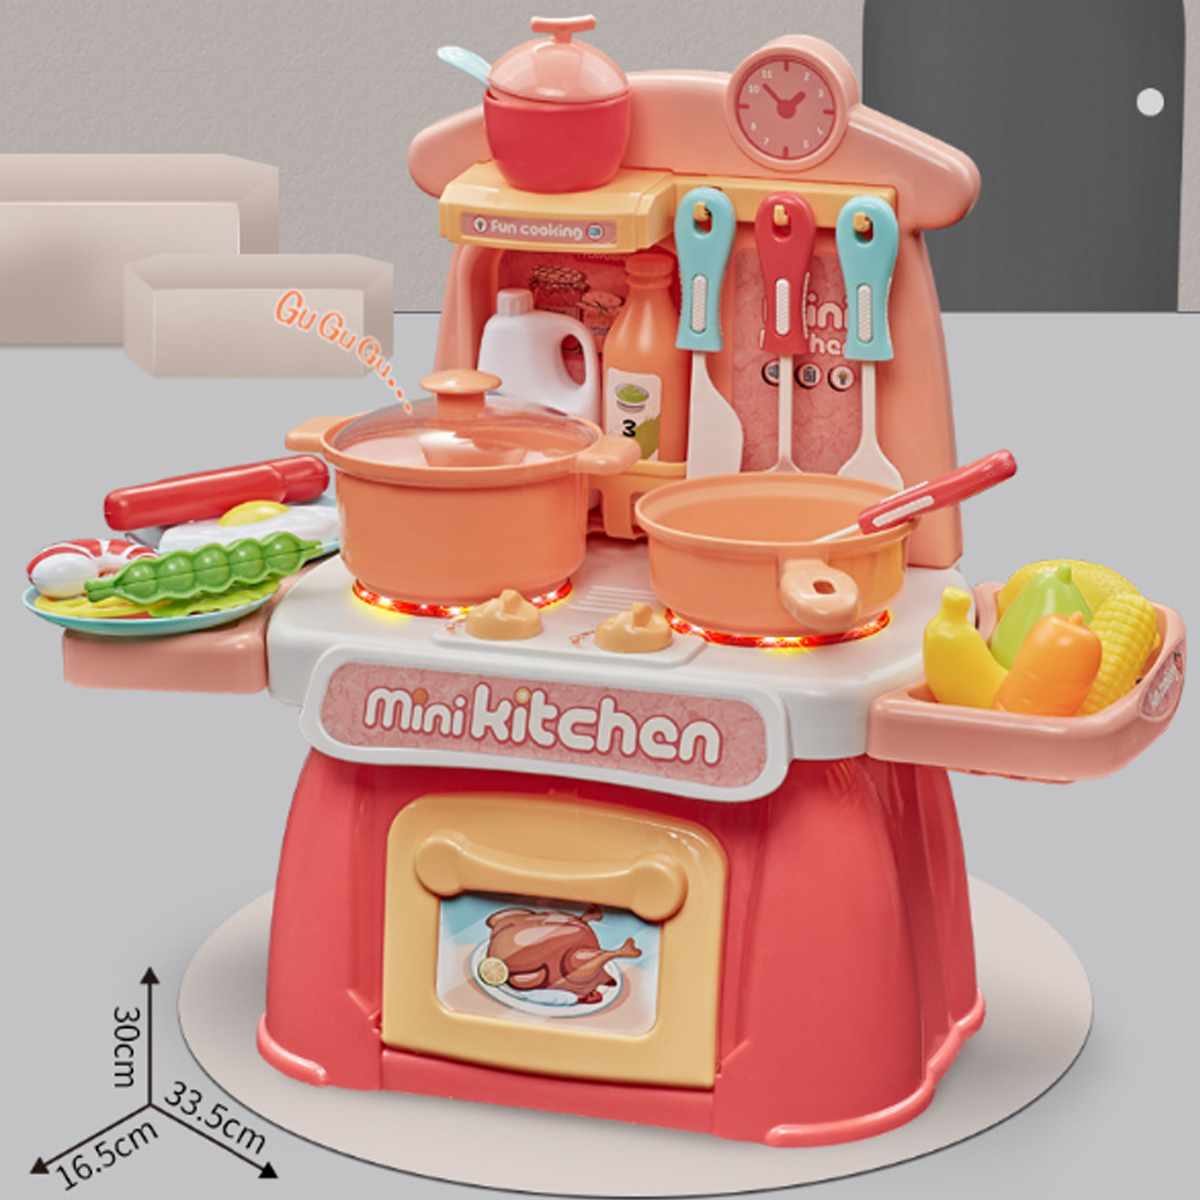 26 IN 1 Kitchen Playset Multifunctional Supermarket Table Toys for Children's Gifts - Photo: 7